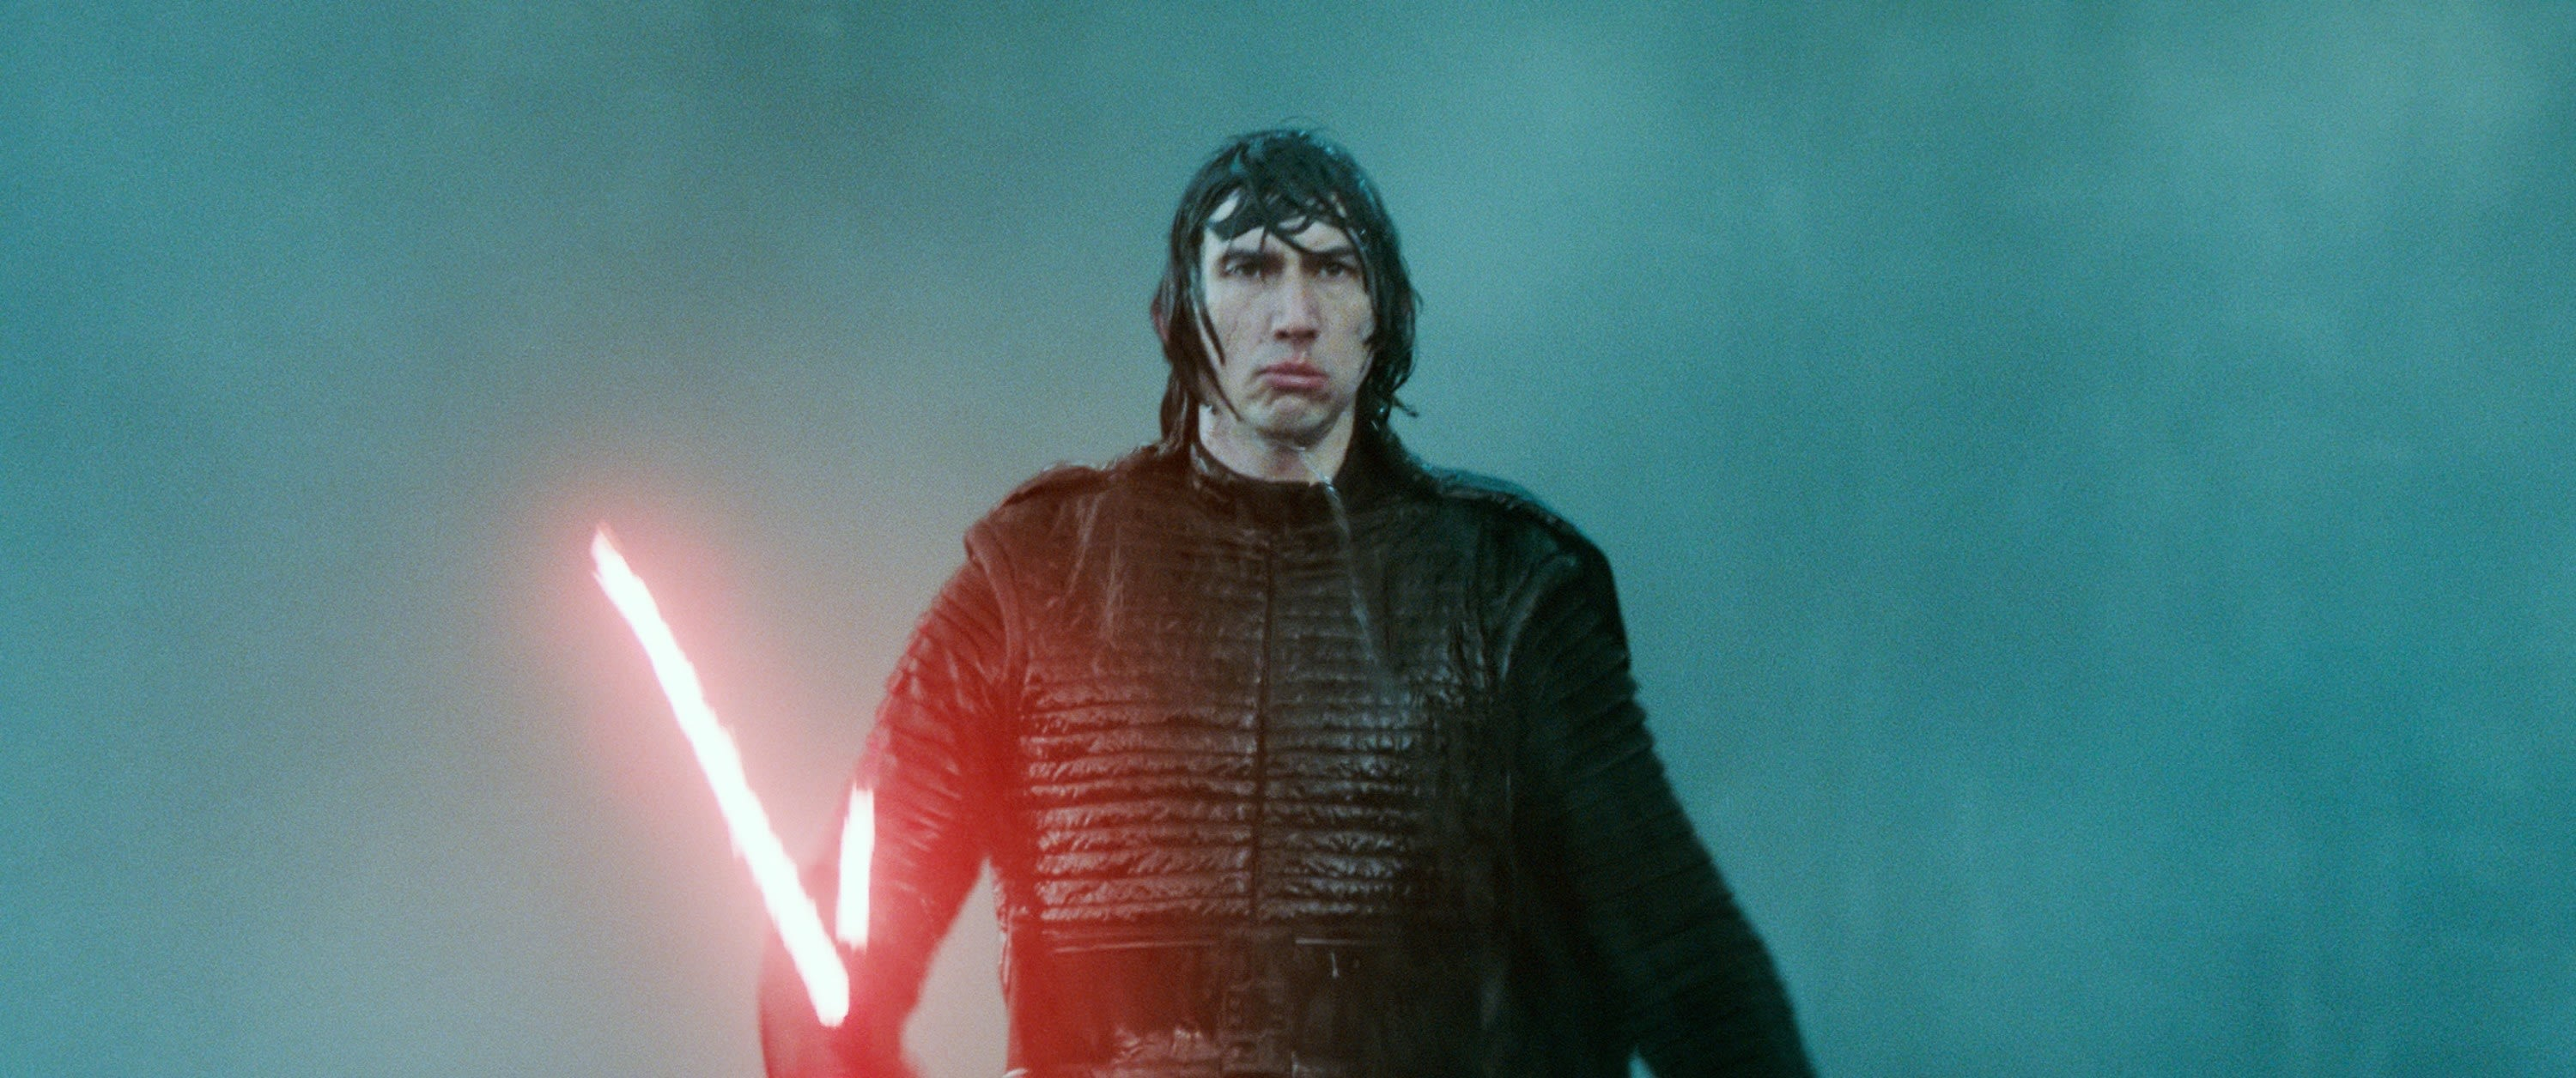 """Kylo Ren holding his iconic lightsaber in """"Star Wars"""""""